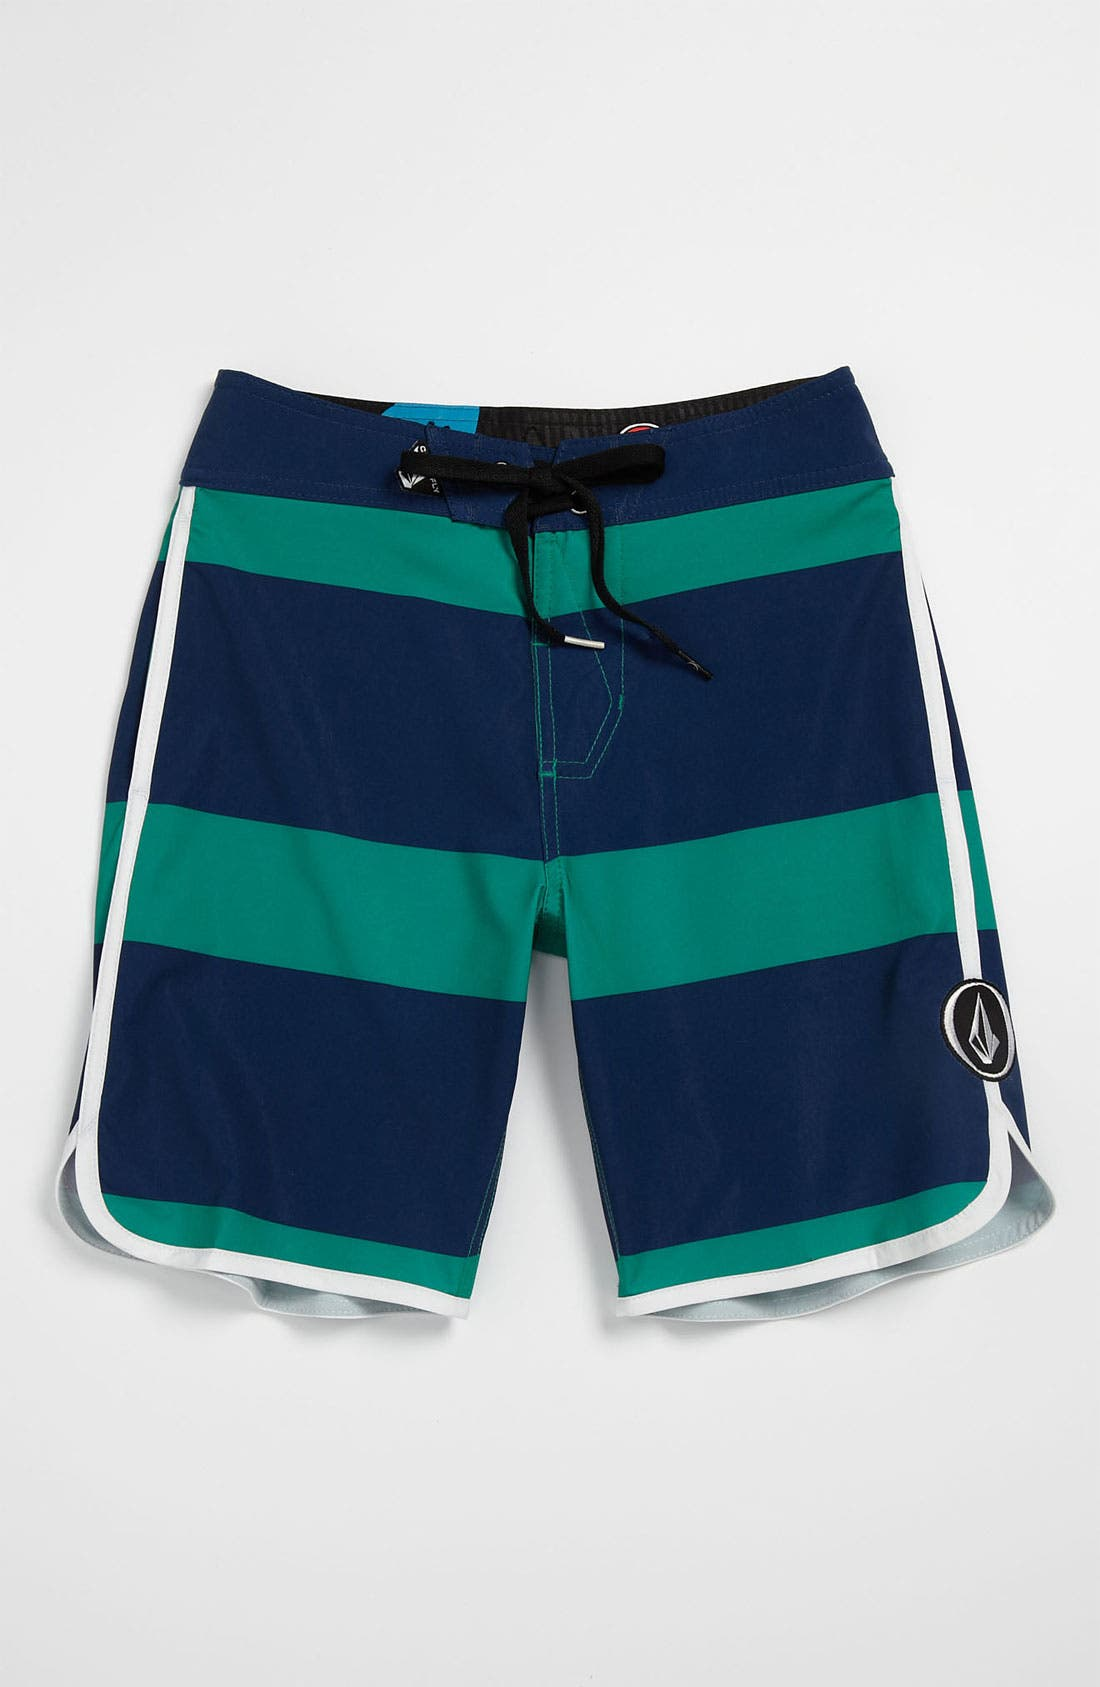 Alternate Image 1 Selected - Volcom 'Scallop' Board Shorts (Big Boys)